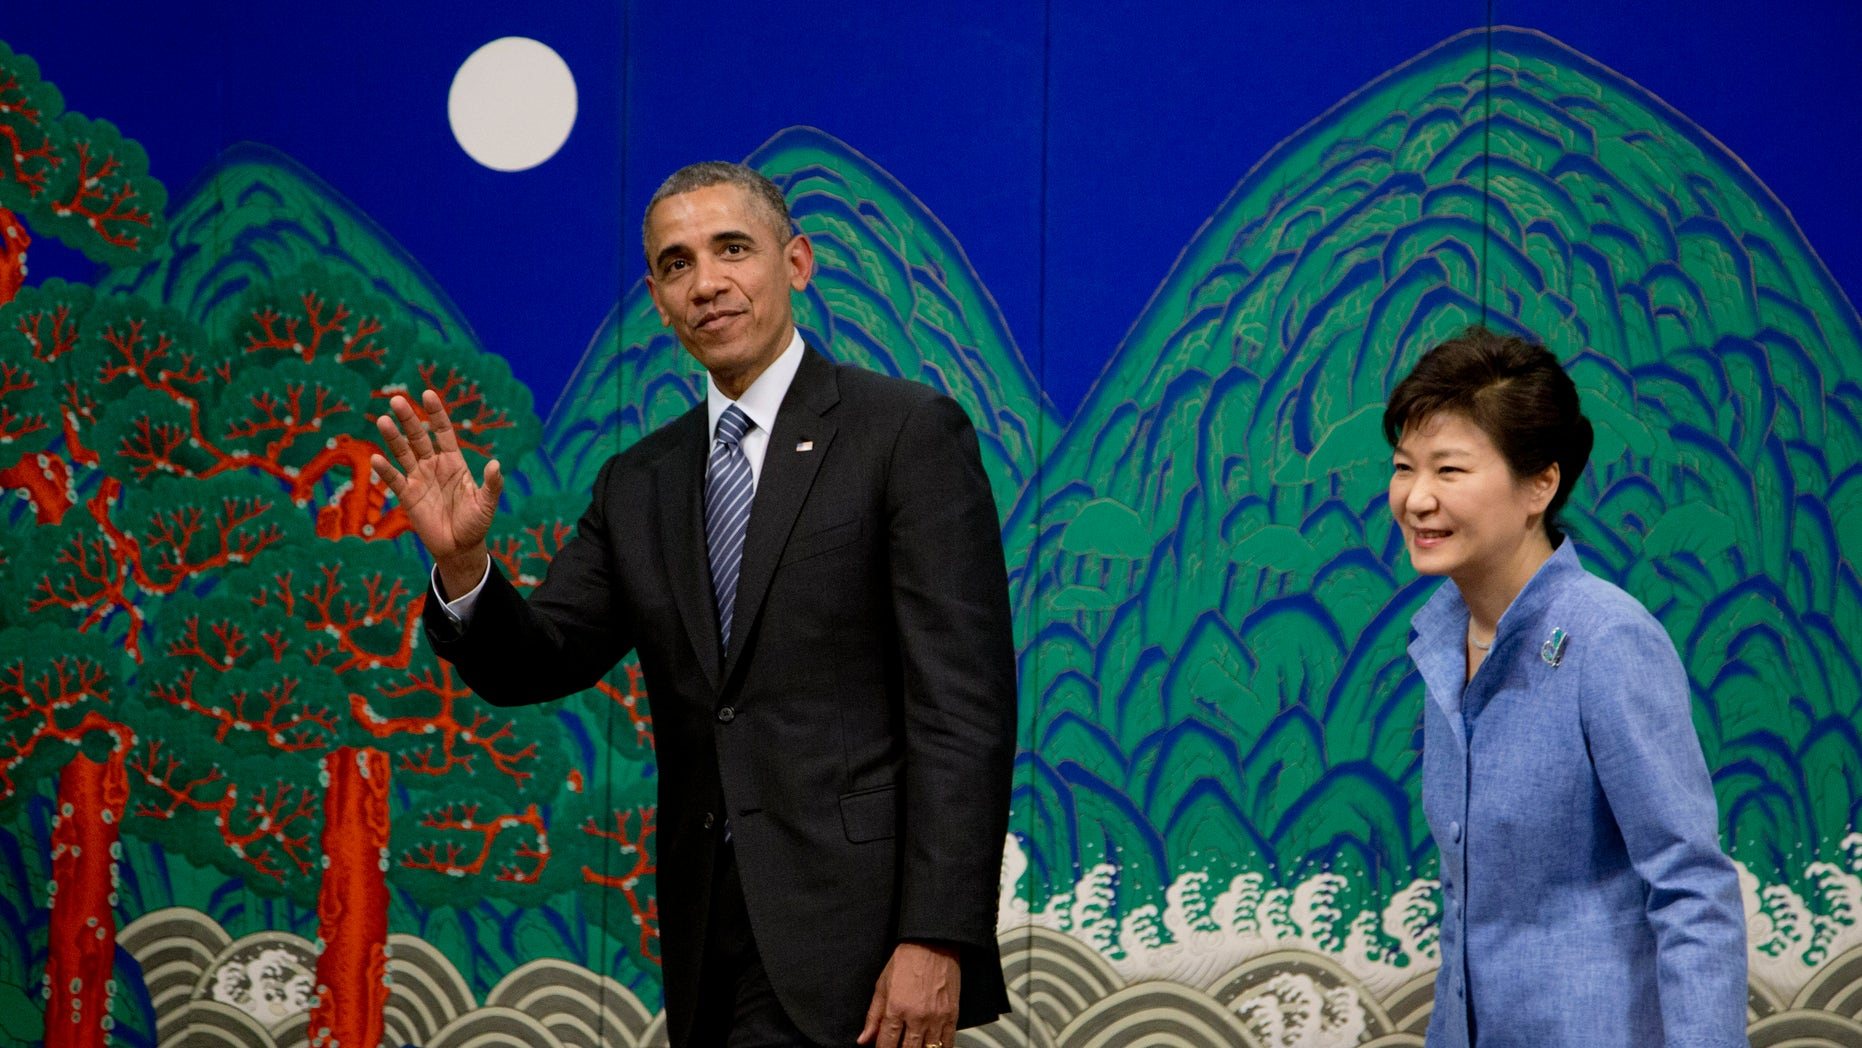 April 25, 2014 - President Obama waves to media as he leaves a ceremony with South Korean President Park Geun-hye at the Blue House, in Seoul, South Korea.